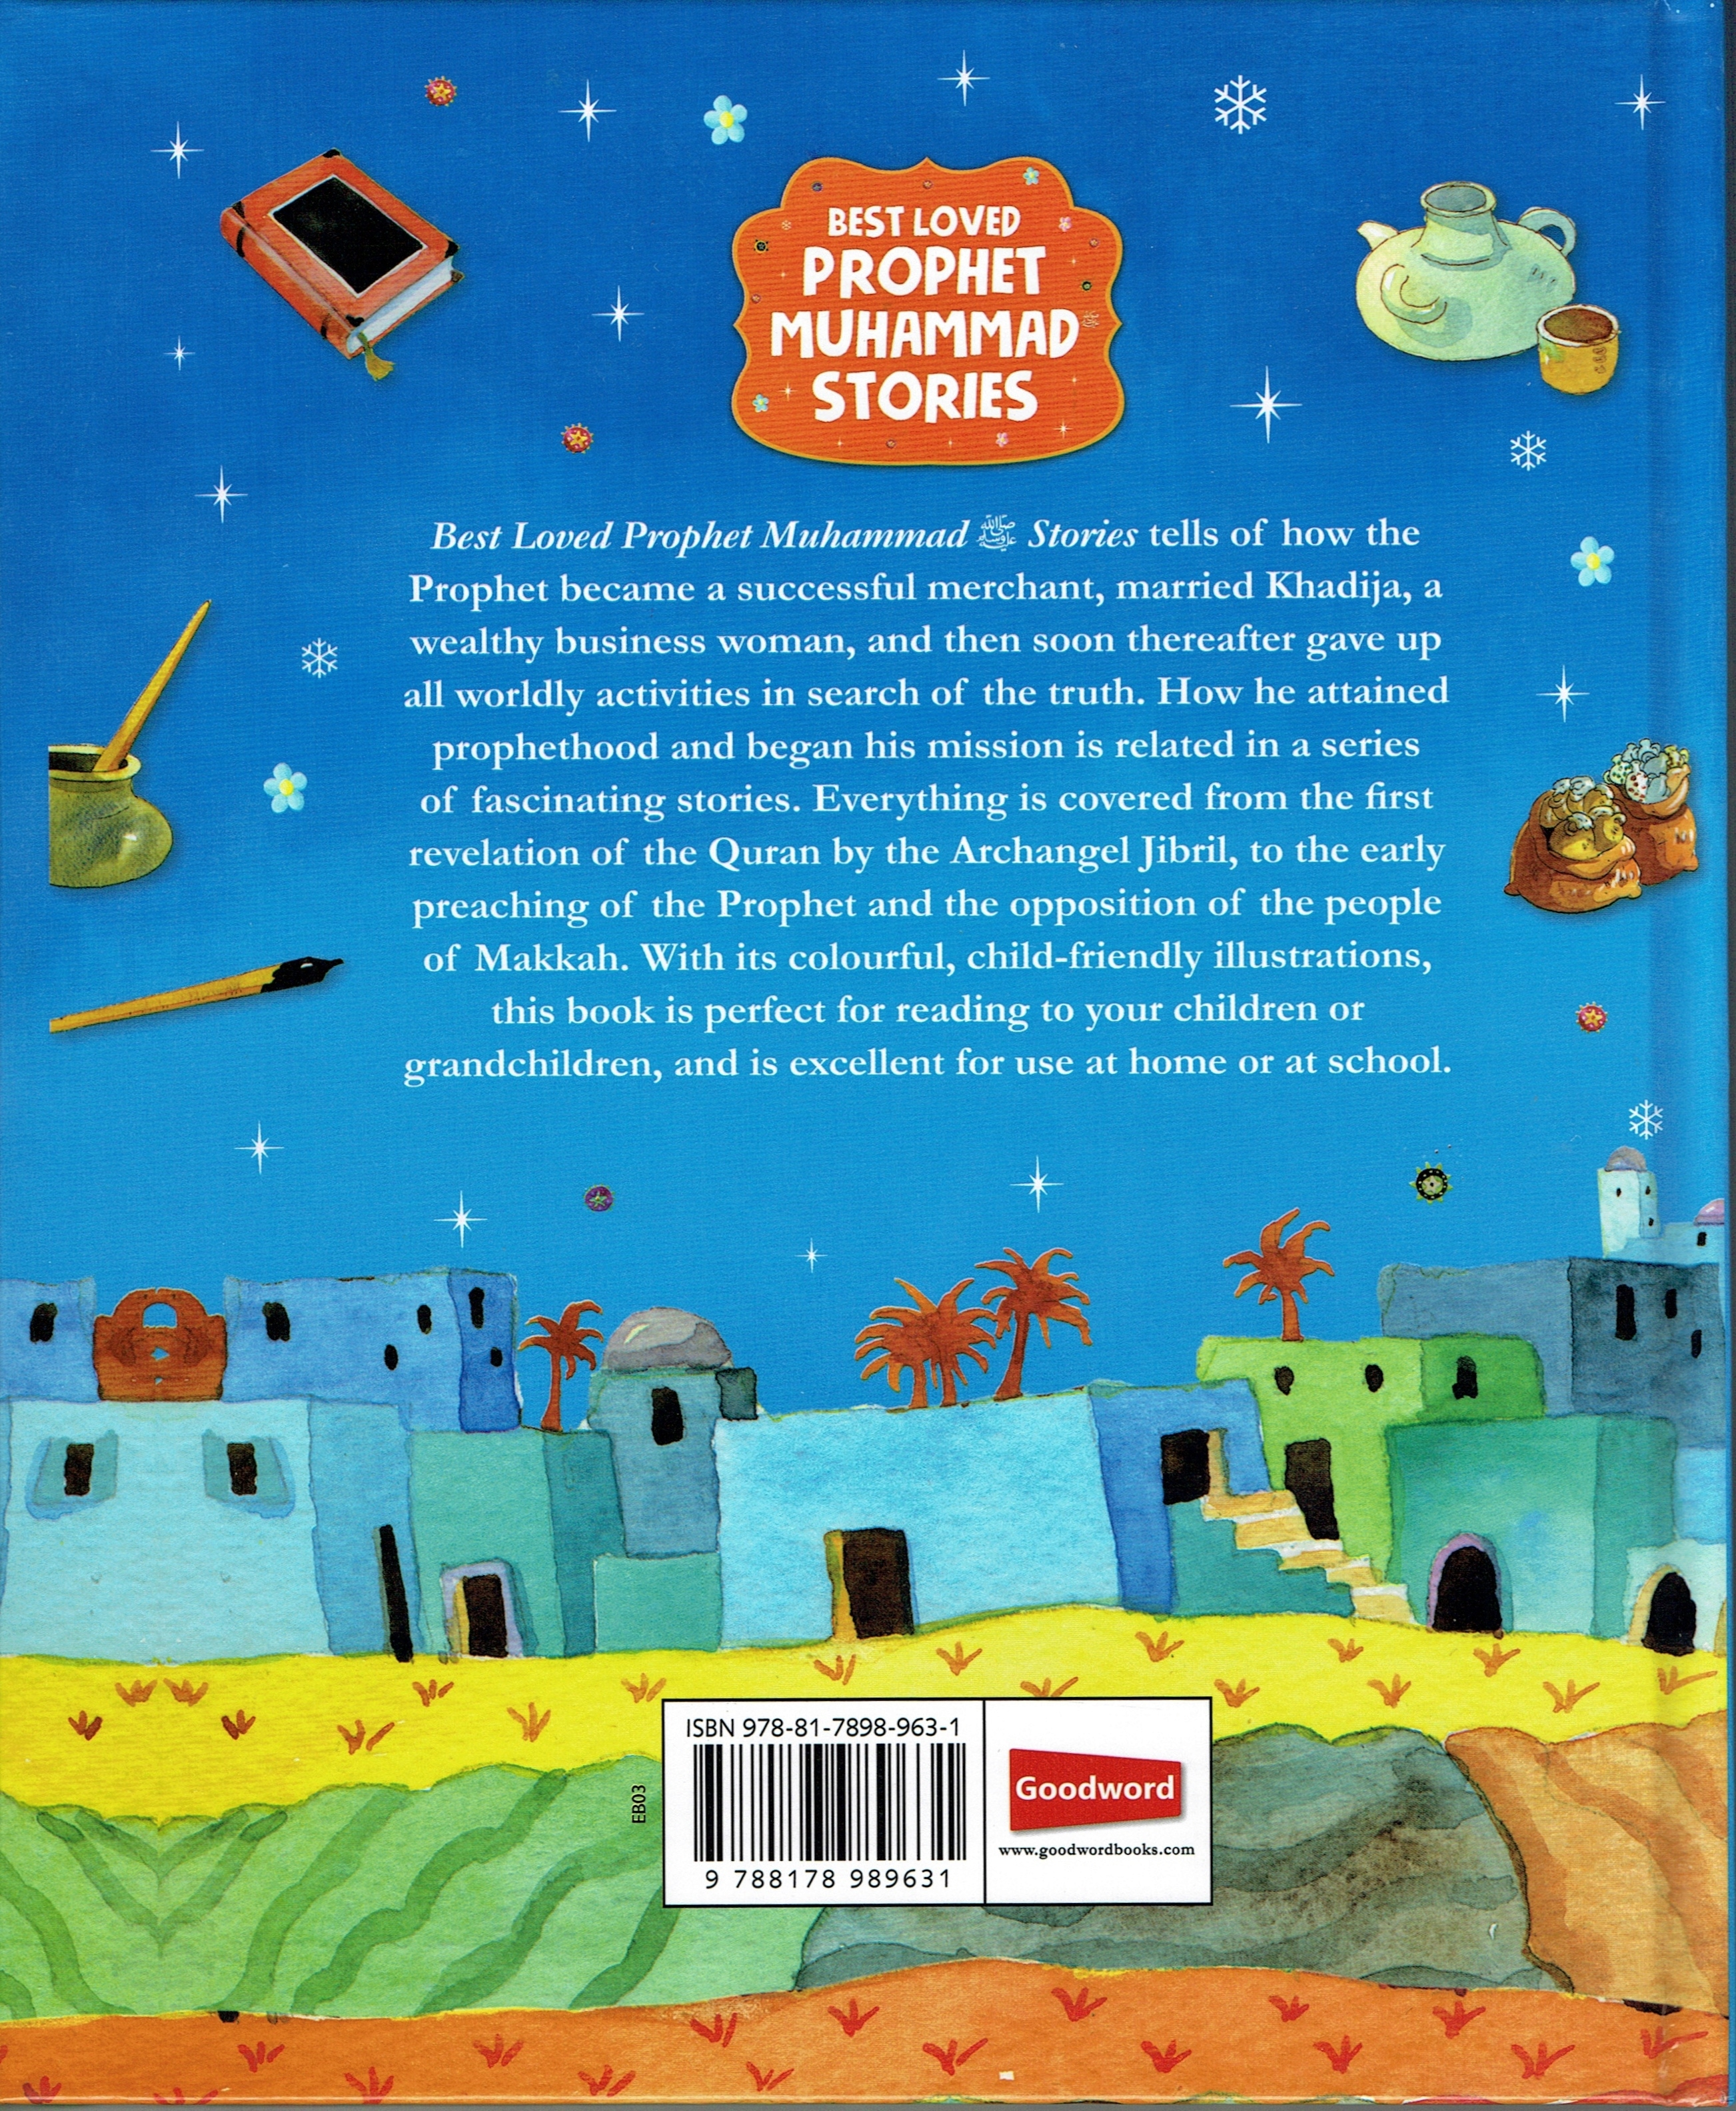 best-loved-prophet-muhammad-stories-2-.jpg